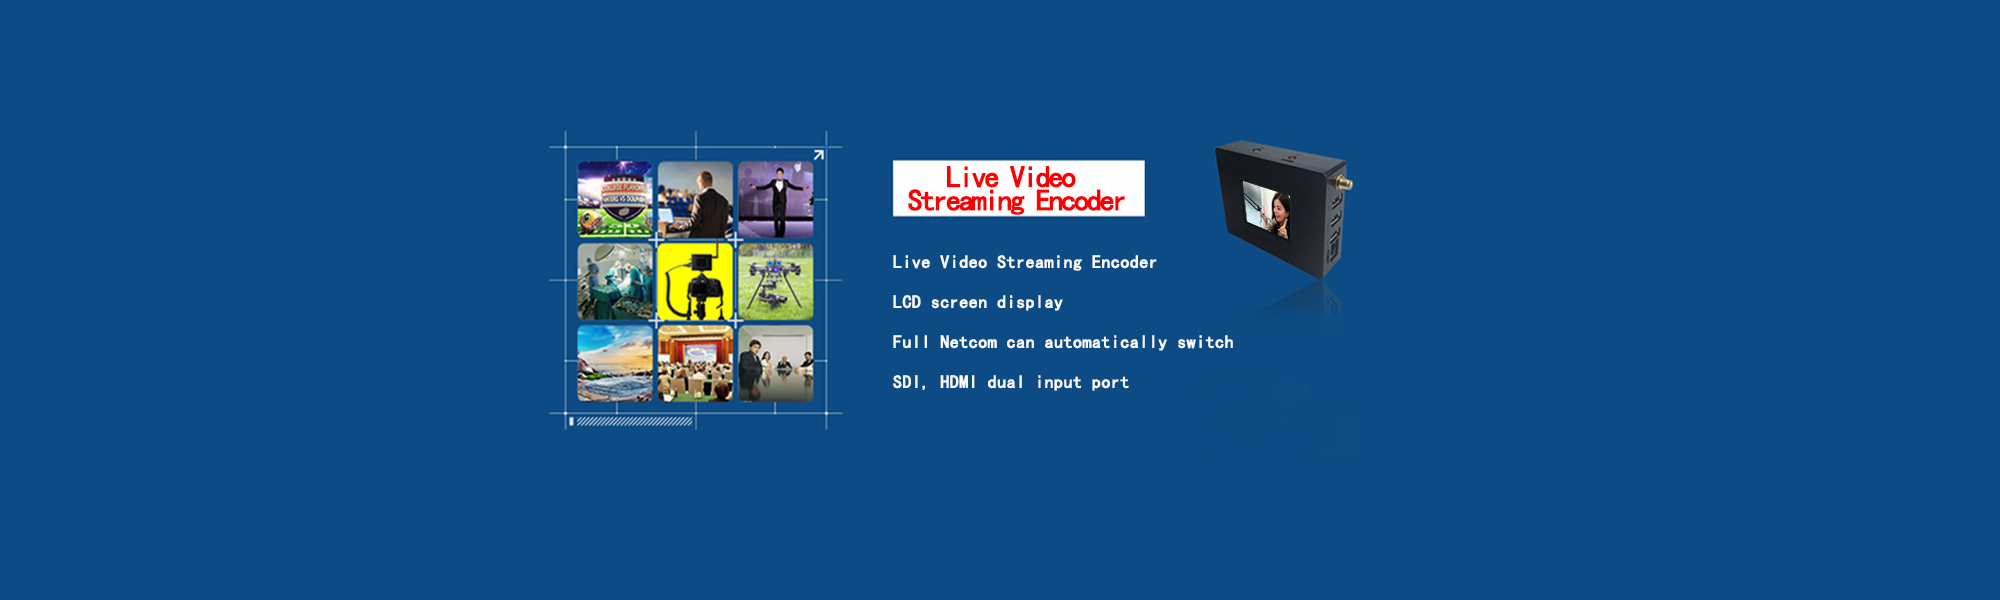 4G Live Video Streaming Encoder